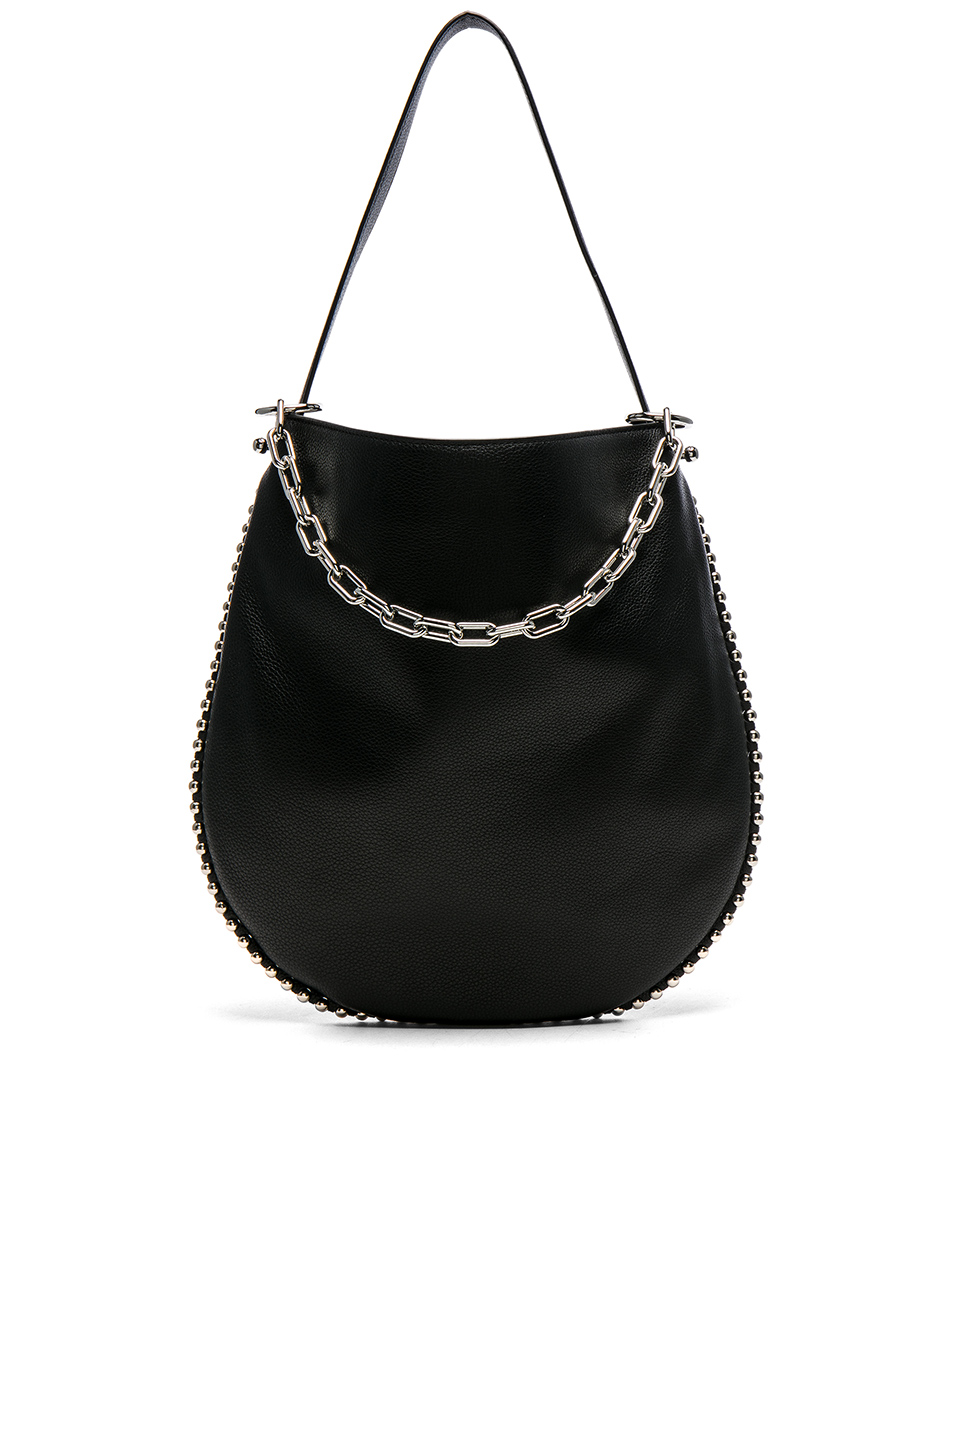 0f2e299a1dd4 Buy Original Alexander Wang Roxy Hobo Bag at Indonesia